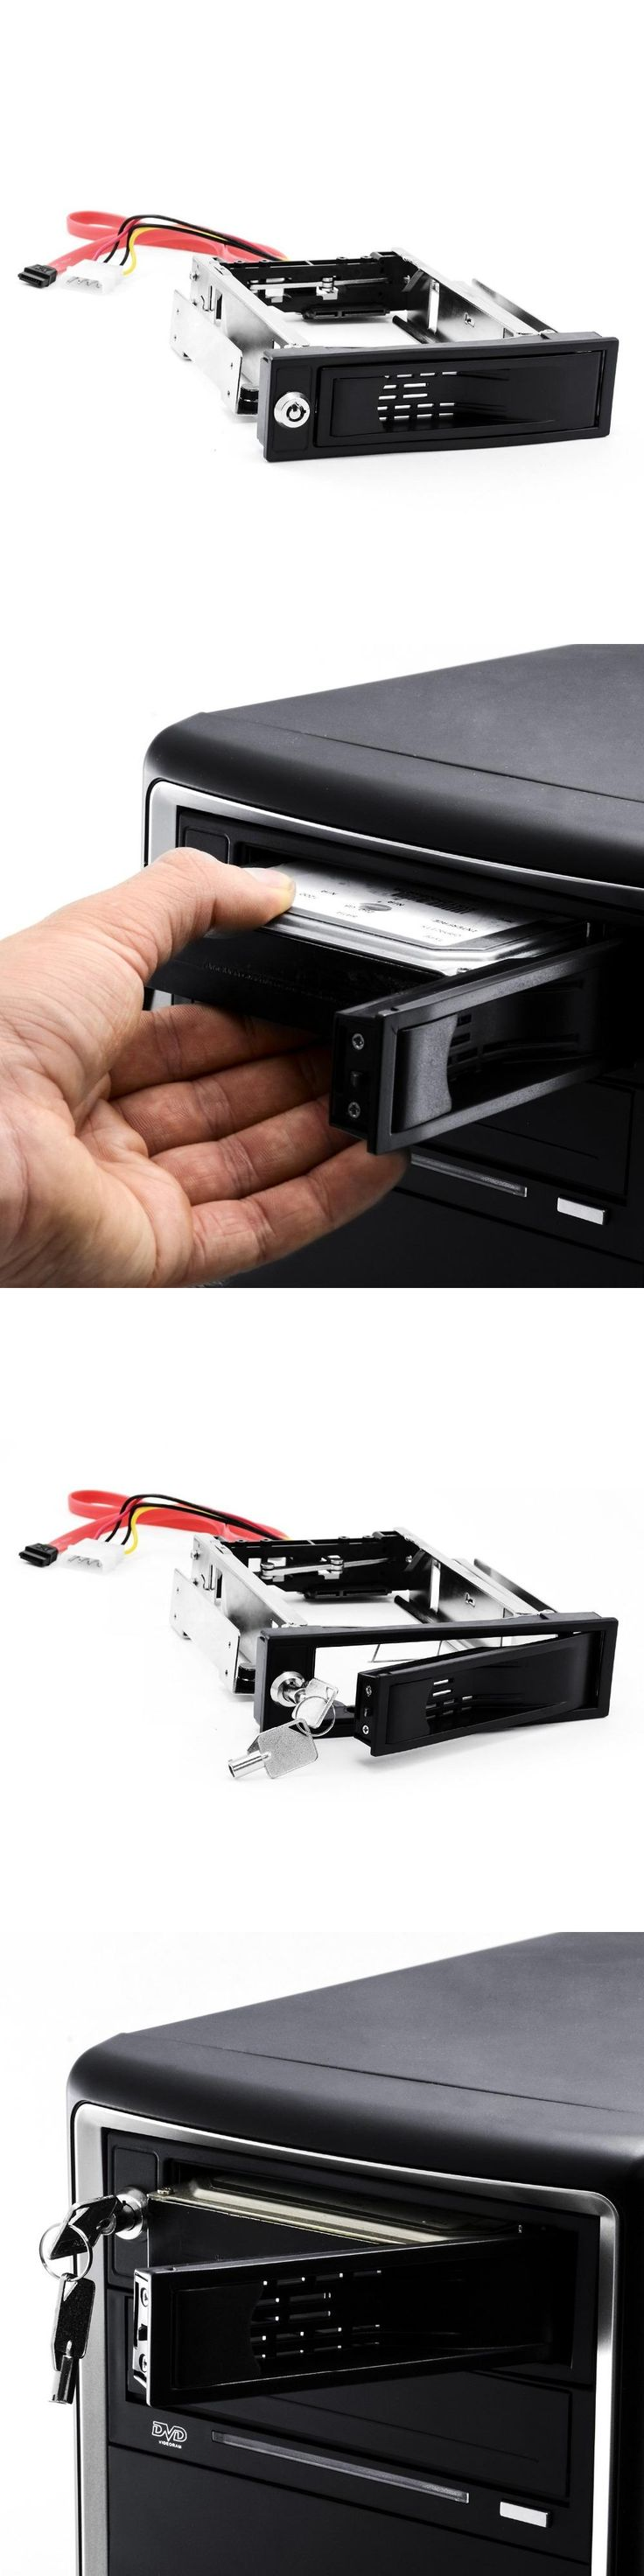 """3.5 """"caddy / SATA Mobile Rack